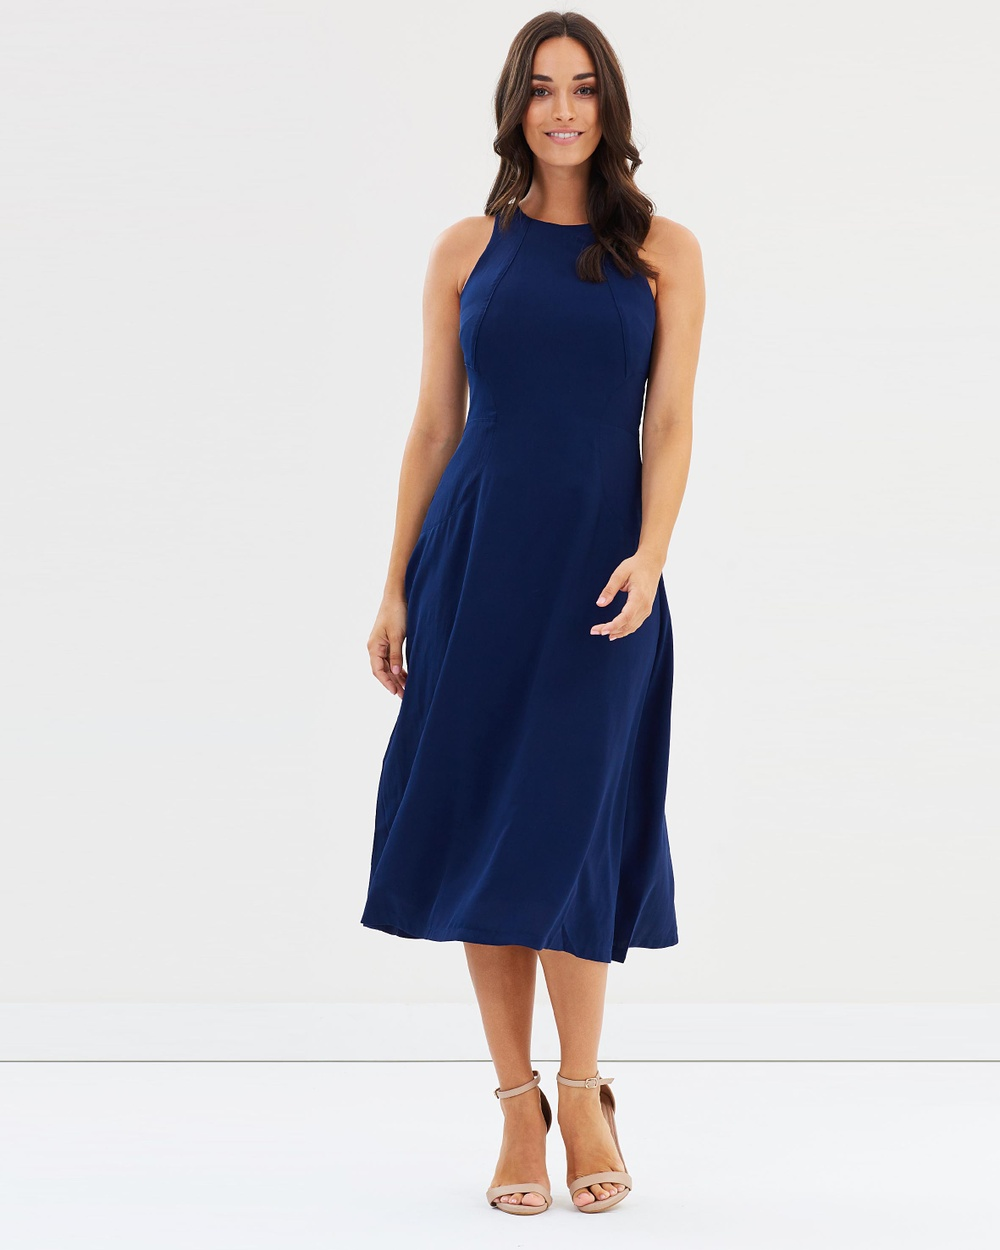 Forcast Quincy Flared Dress Dresses Navy Quincy Flared Dress